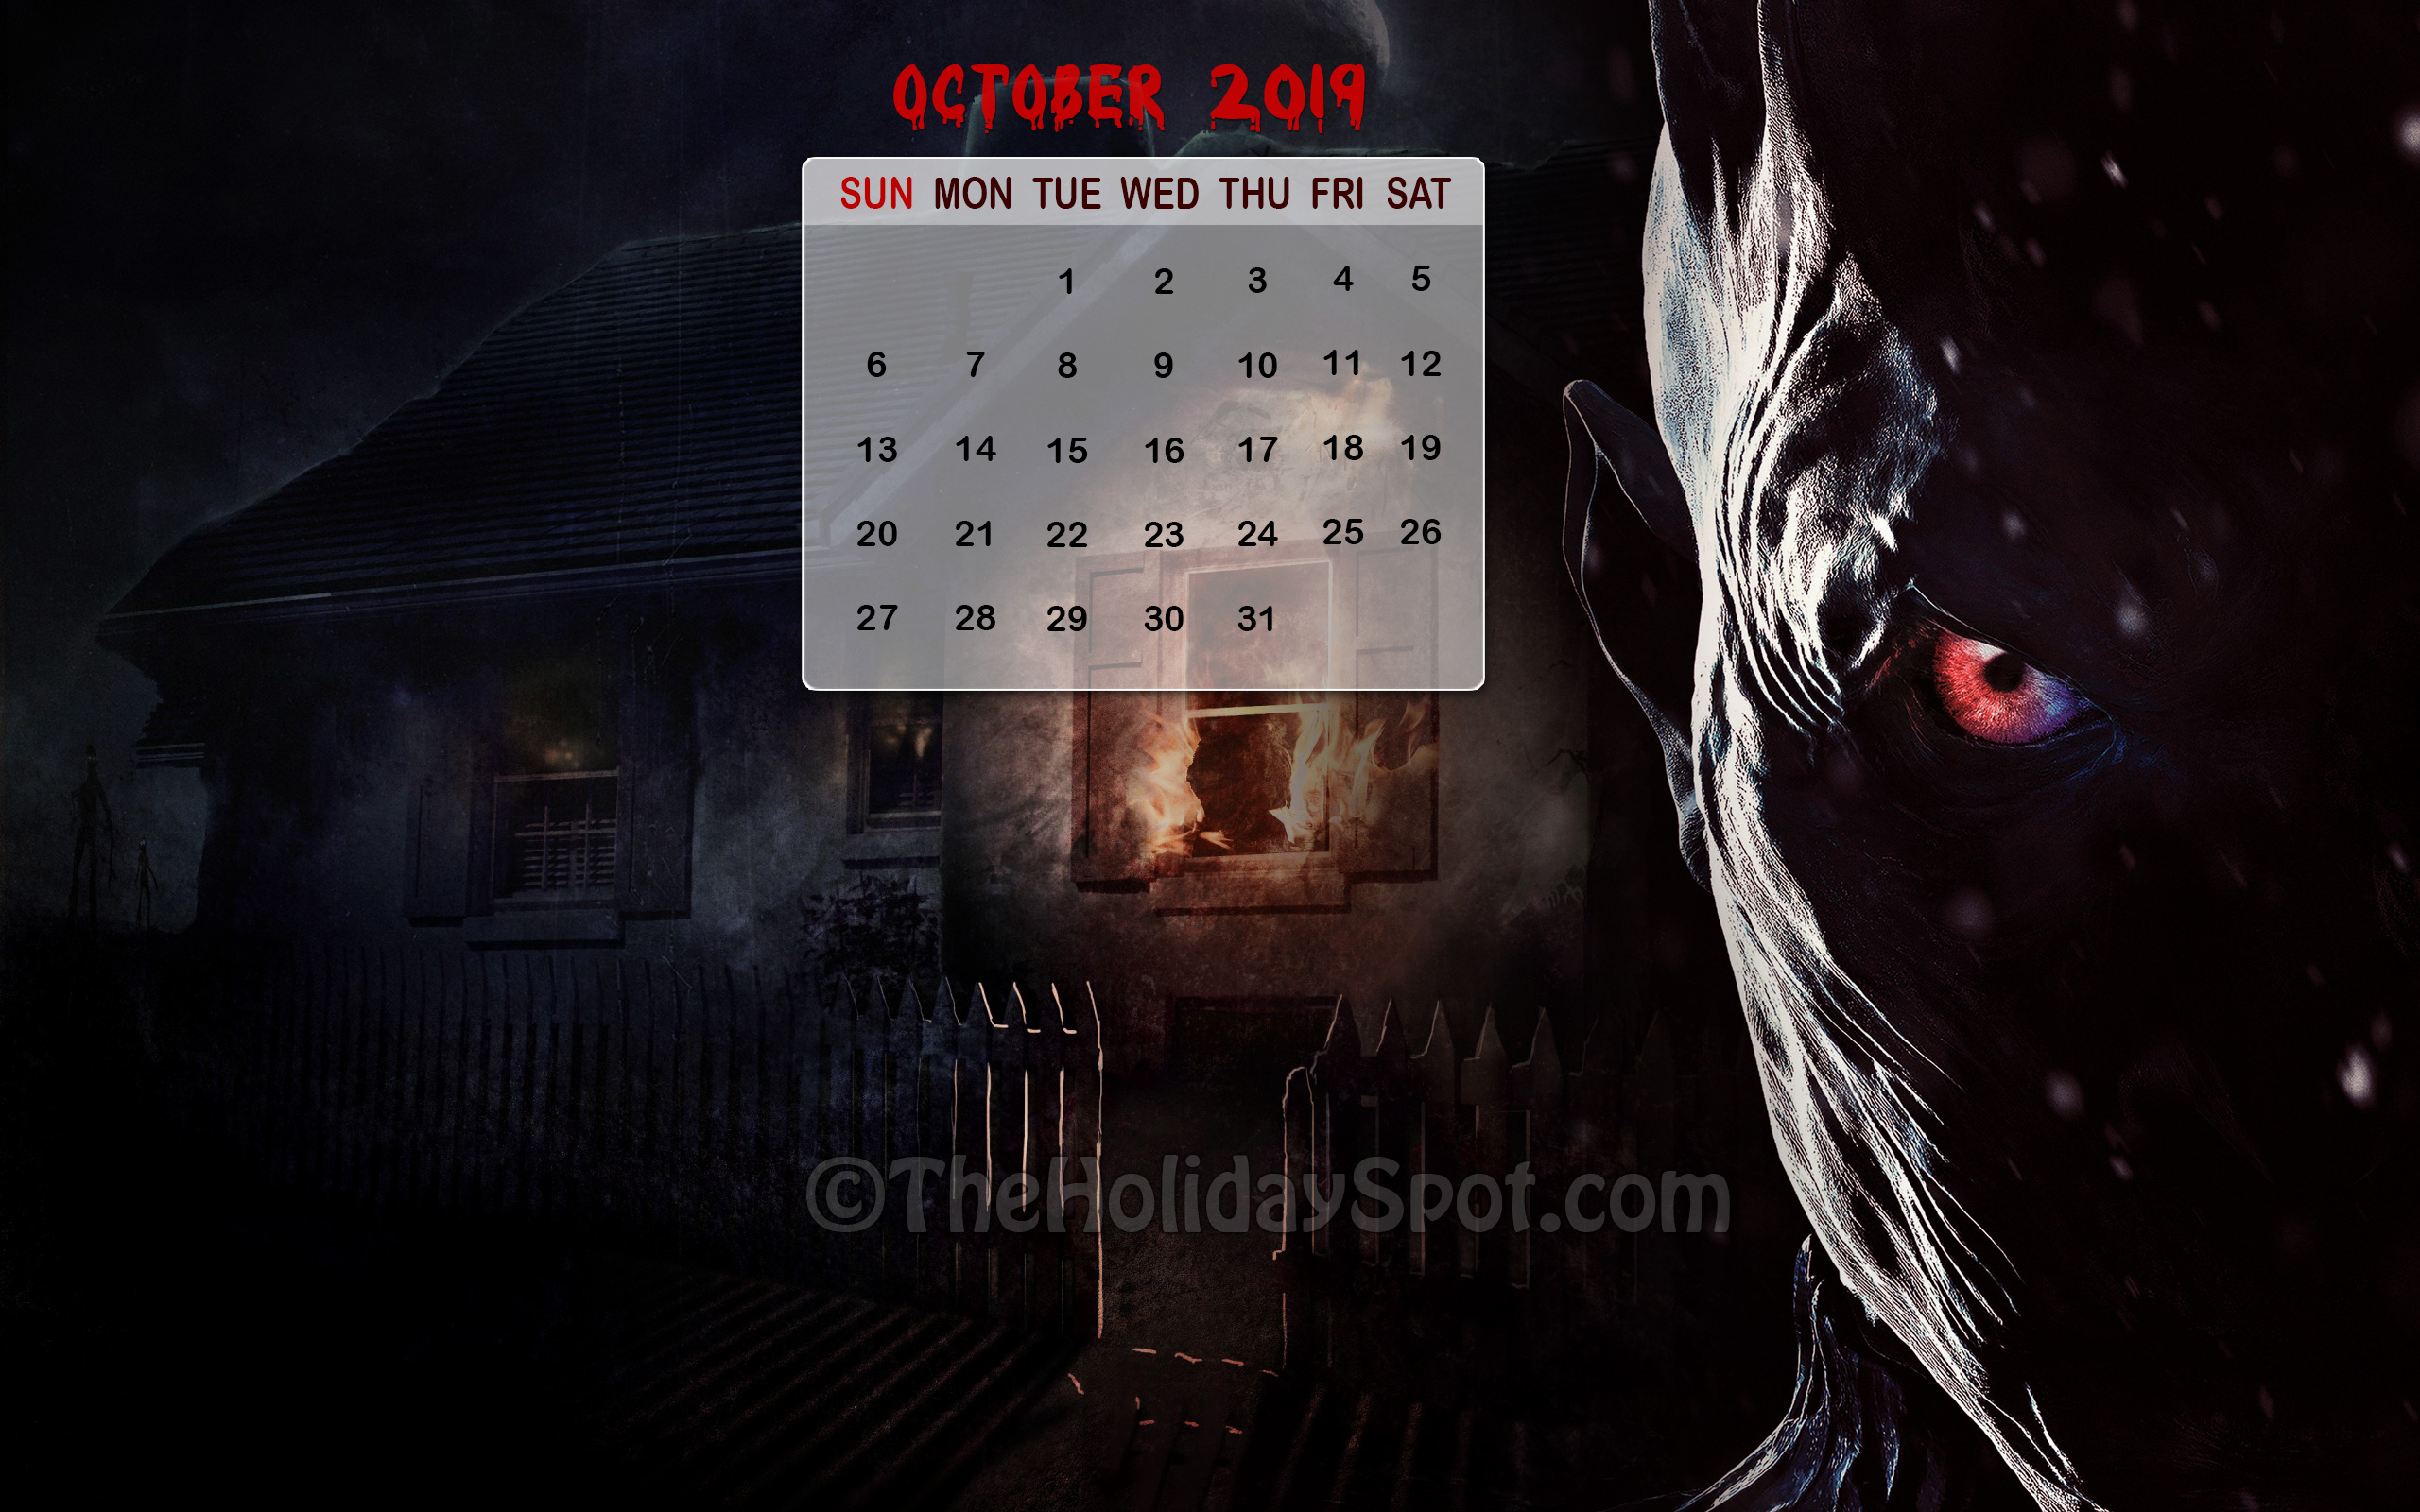 Halloween Themed Calendar Wallpaper For The Month Of - Night King Poster Season 8 , HD Wallpaper & Backgrounds